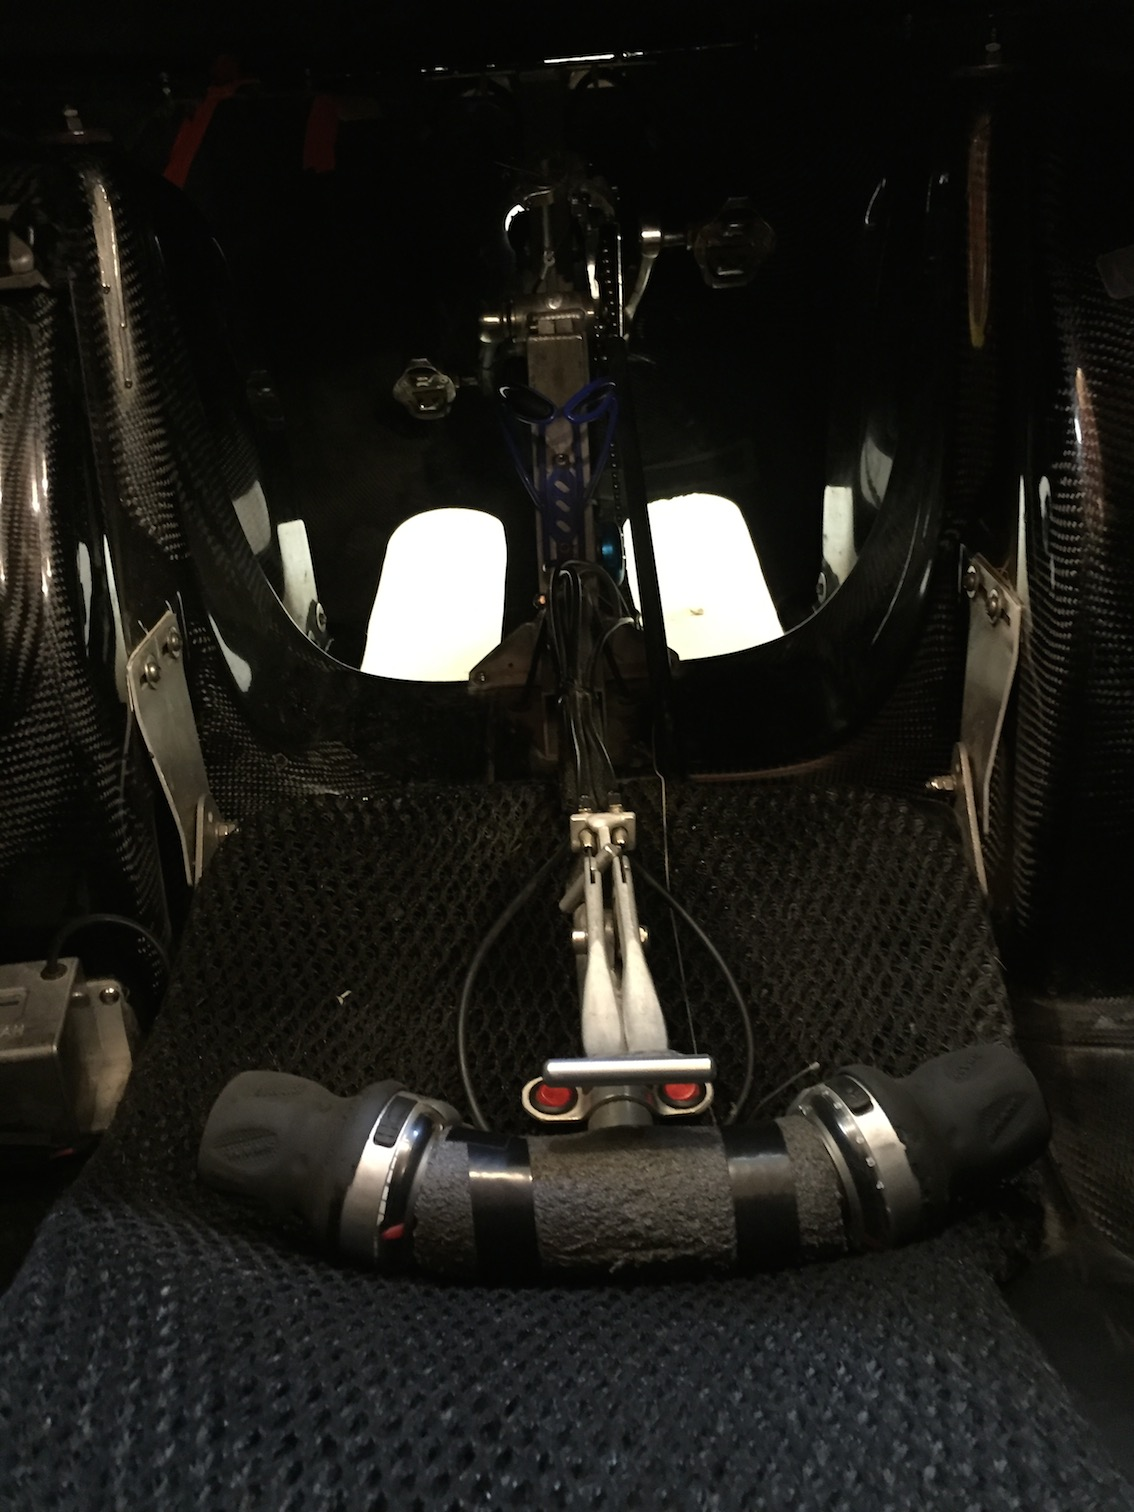 That handle sits on your lap and controls your brakes and signal lights.